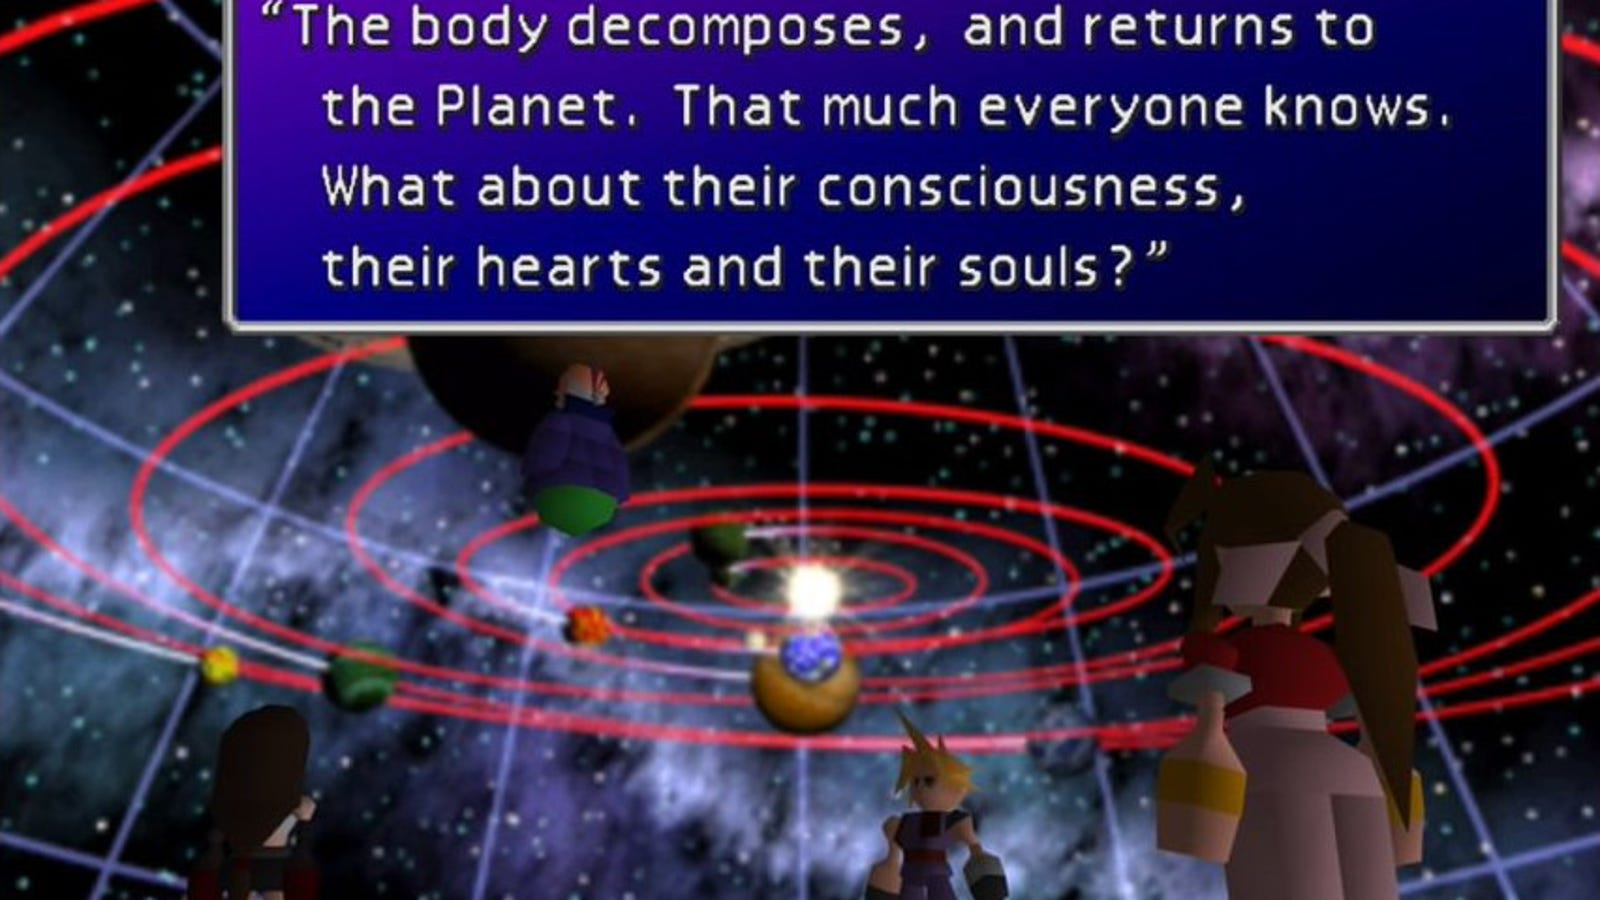 Final Fantasy Vii S Cosmo Canyon Sequence Is A Meditation On Family